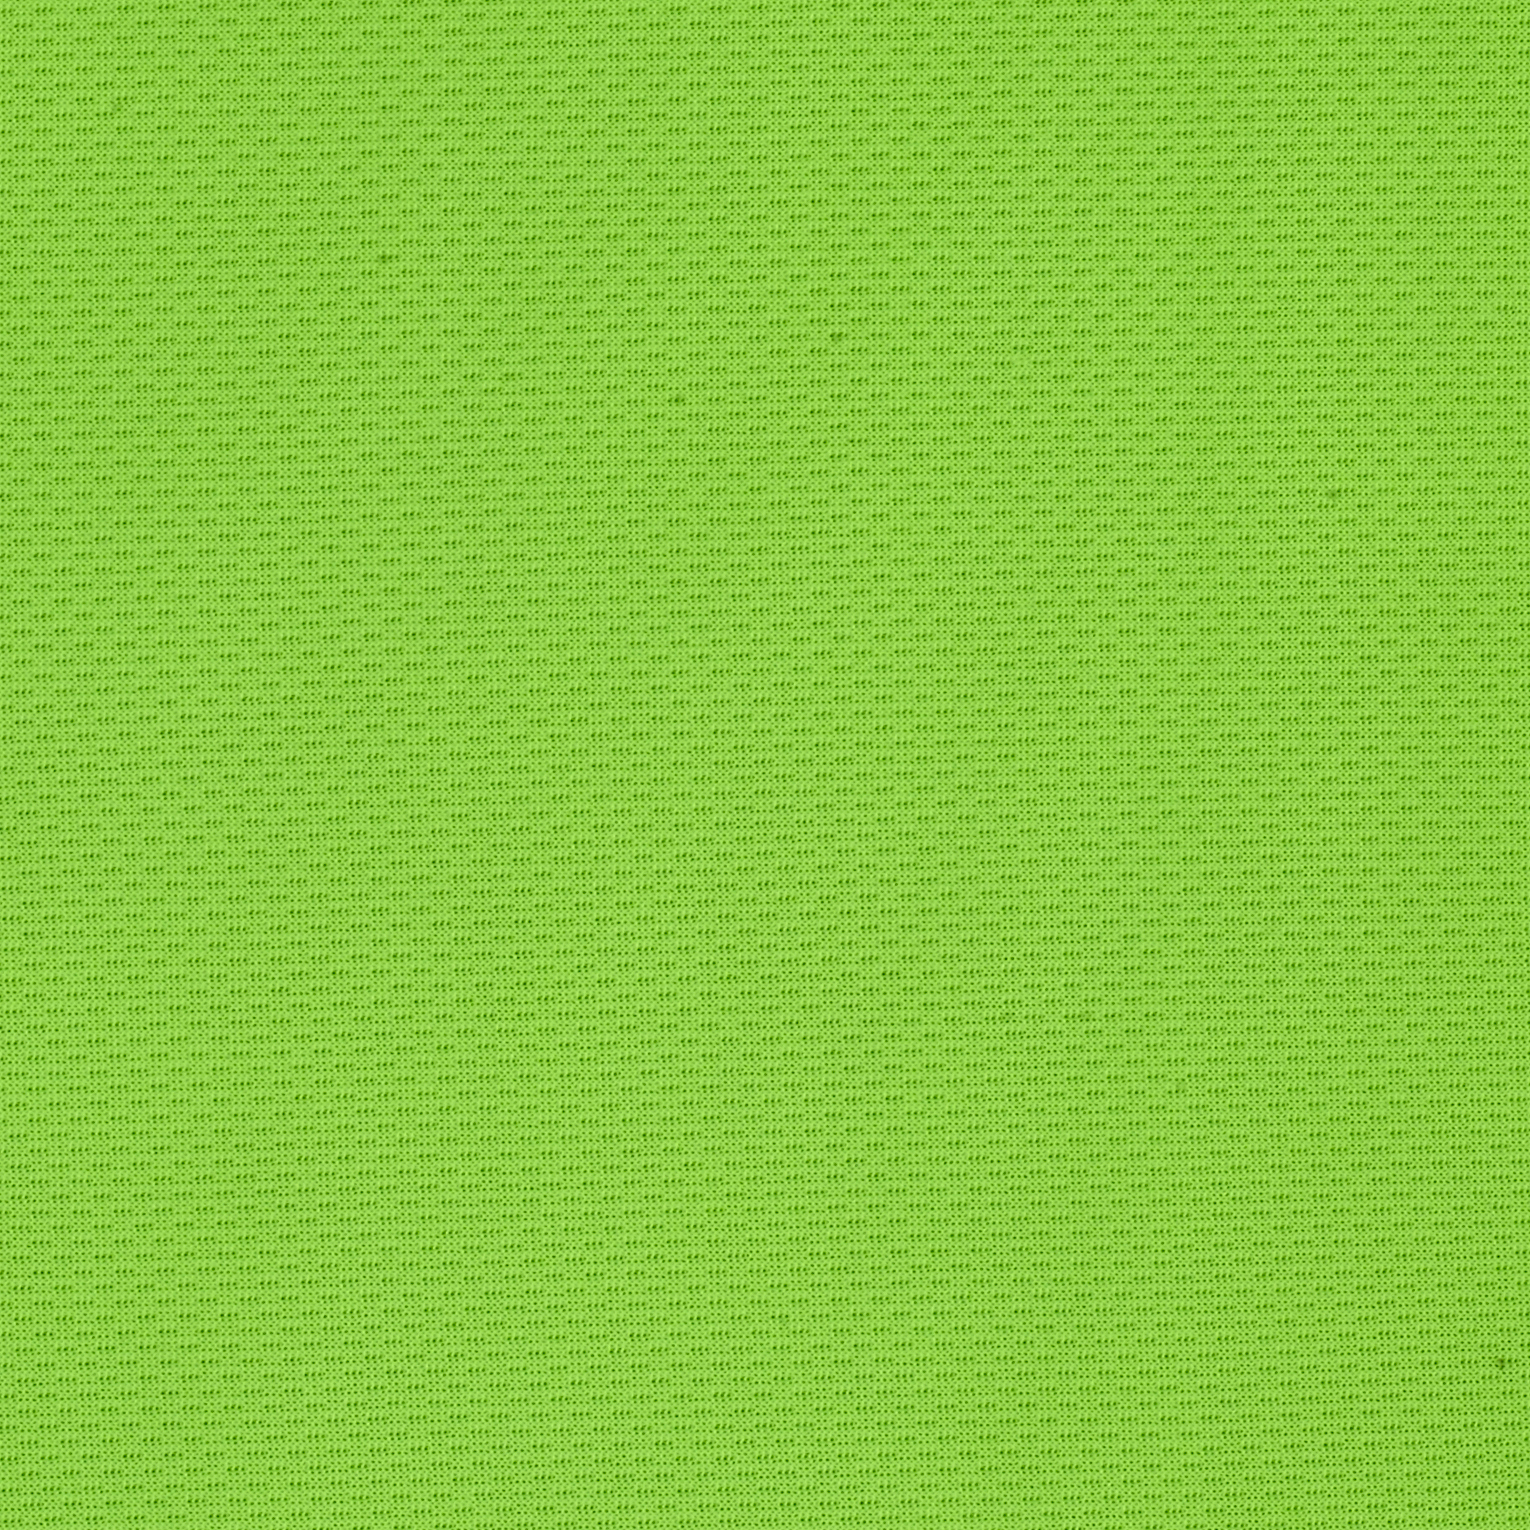 Athletic Mesh Knit Neon Lime Fabric 0454517